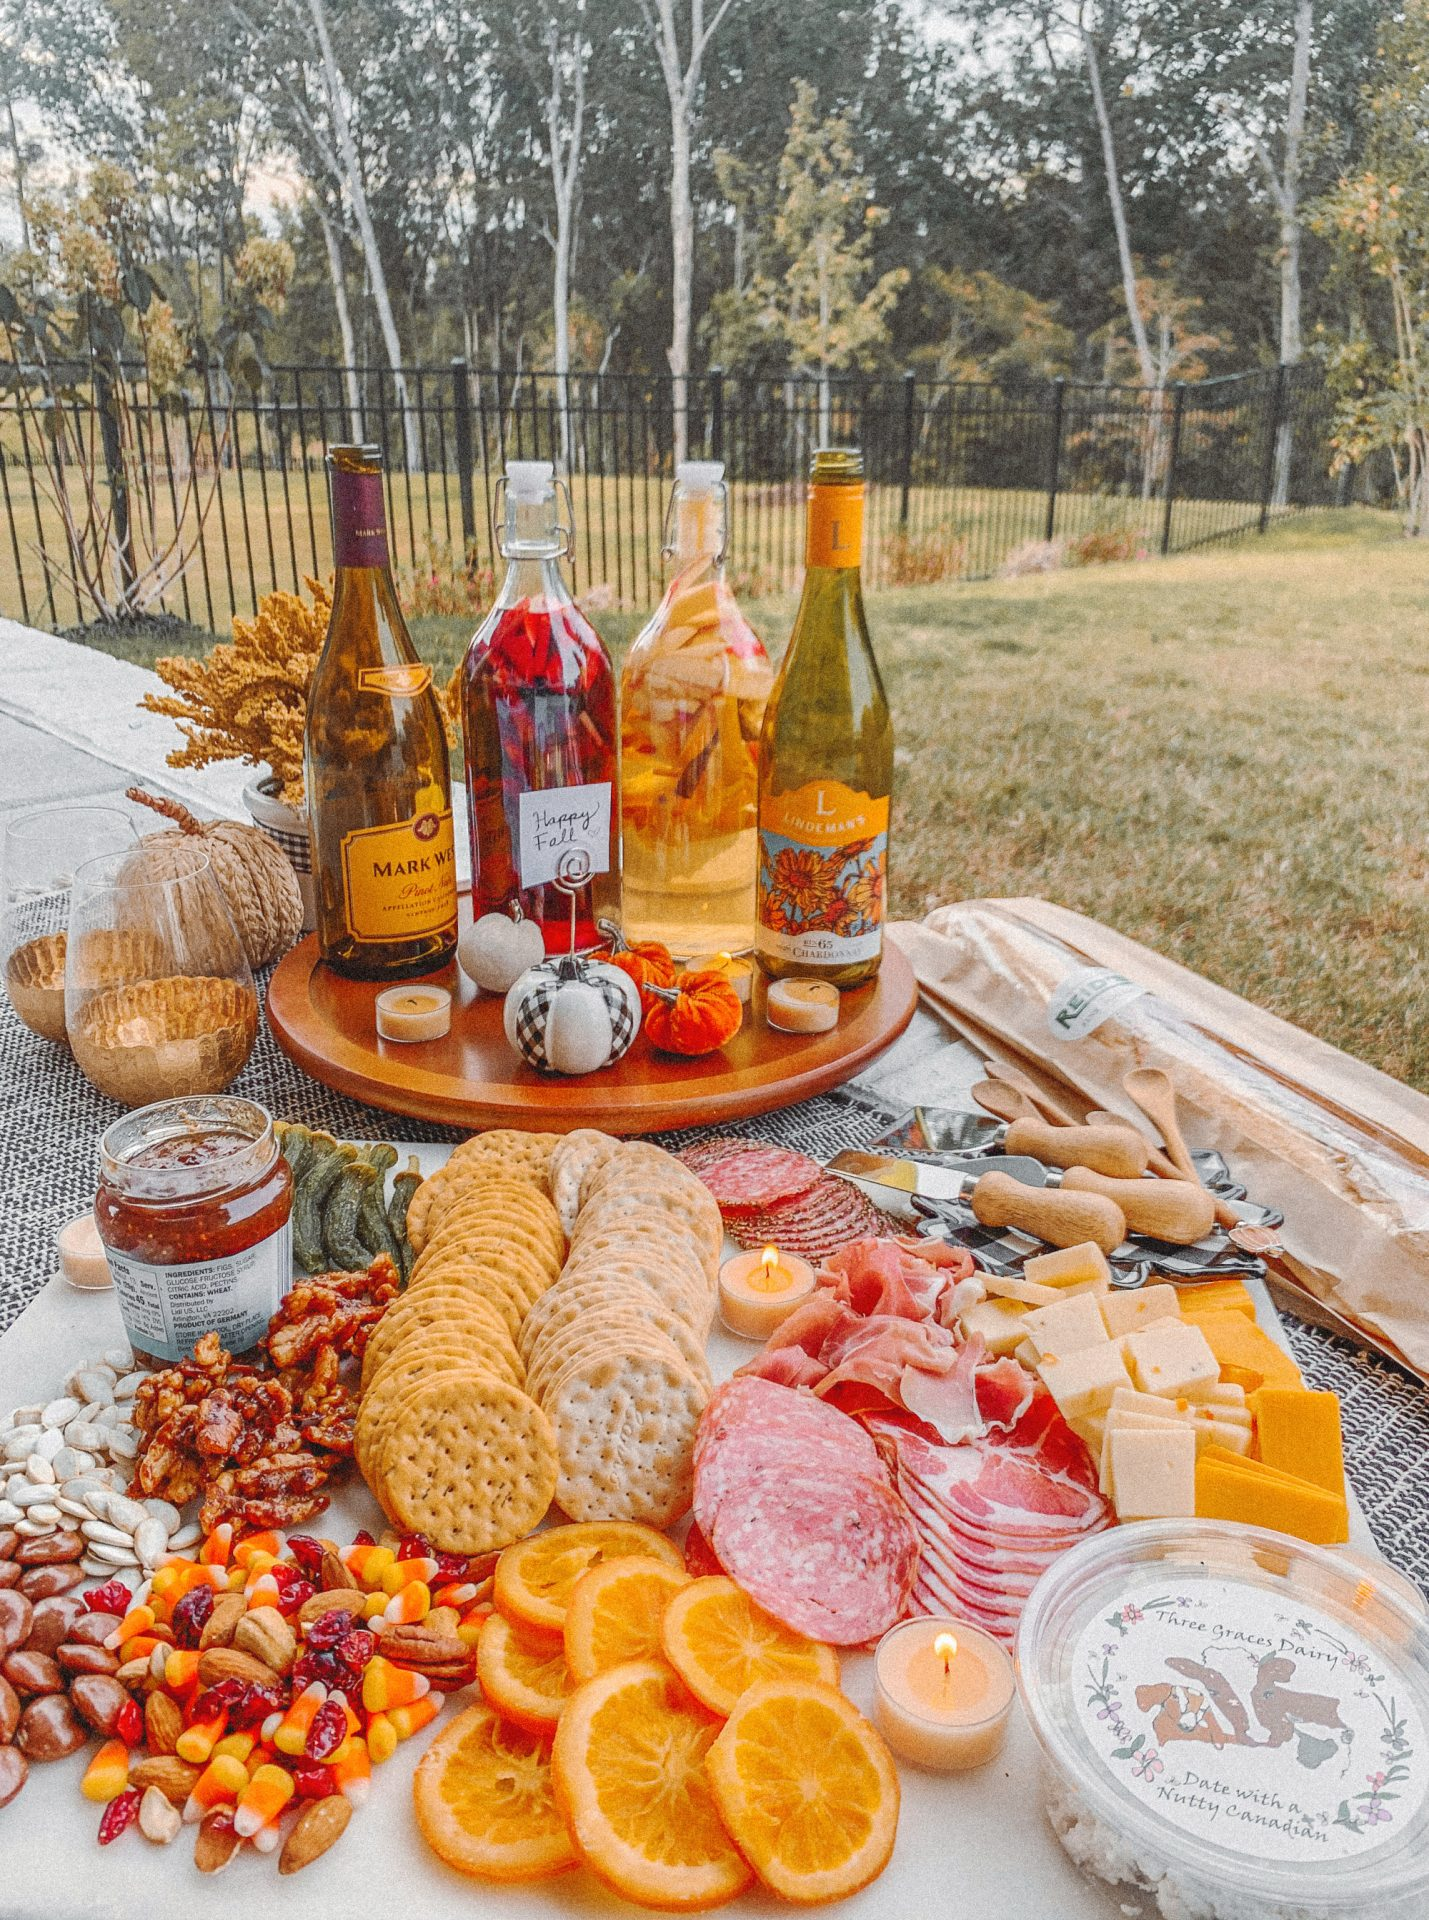 Charcuterie, fall, pumpkin, fall charcuterie board, reids fine food, autumn, orange slices, nuts, seasonal, sangria, spice, pumpkin spice, sweet, southern